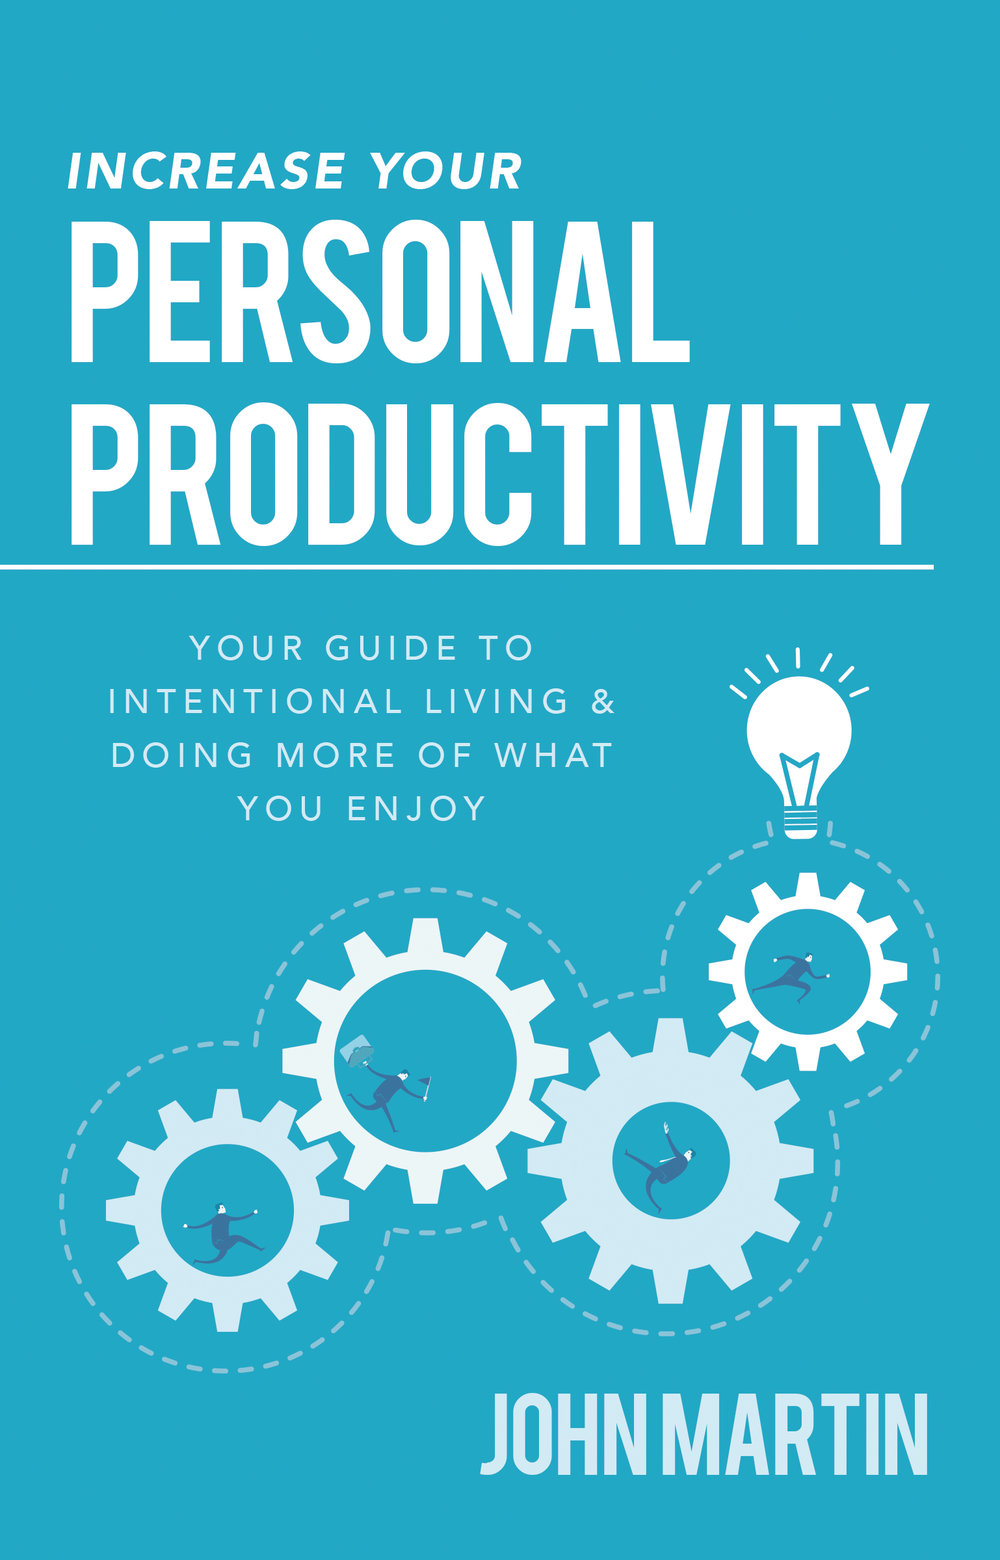 Increase Your Personal Productivity - By John Martin